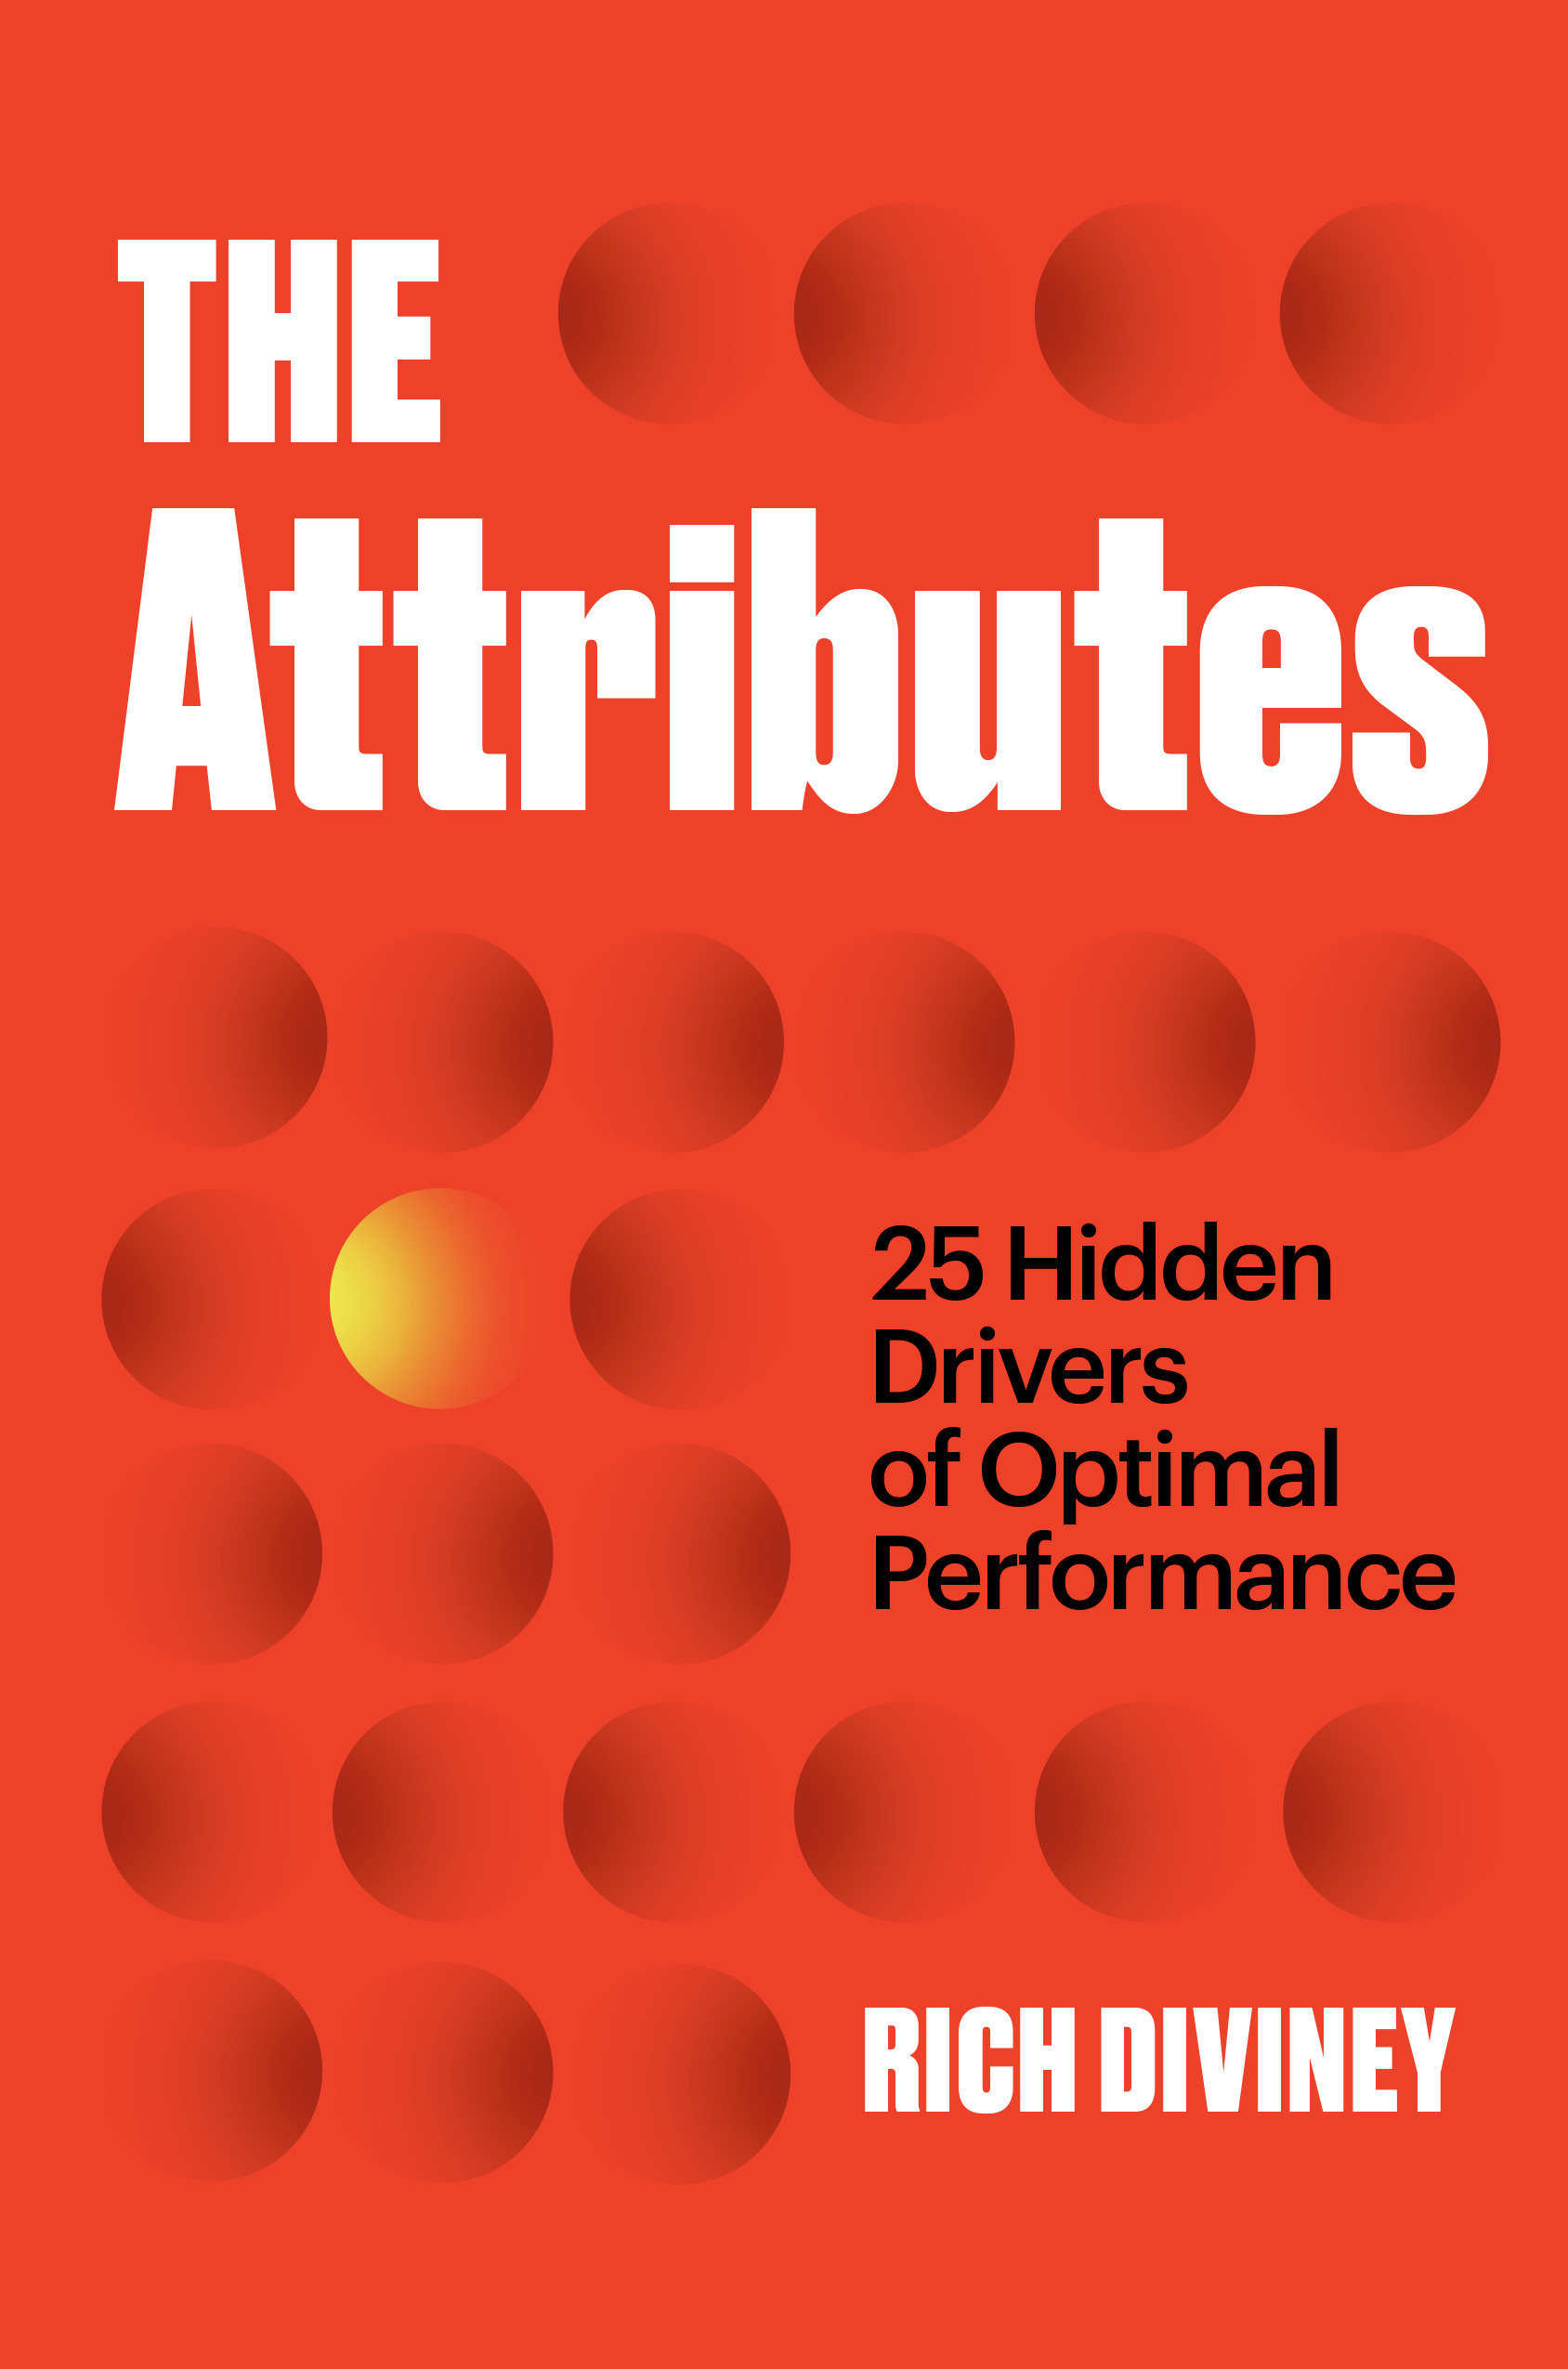 The Attributes 25 Hidden Drivers of Optimal Performance